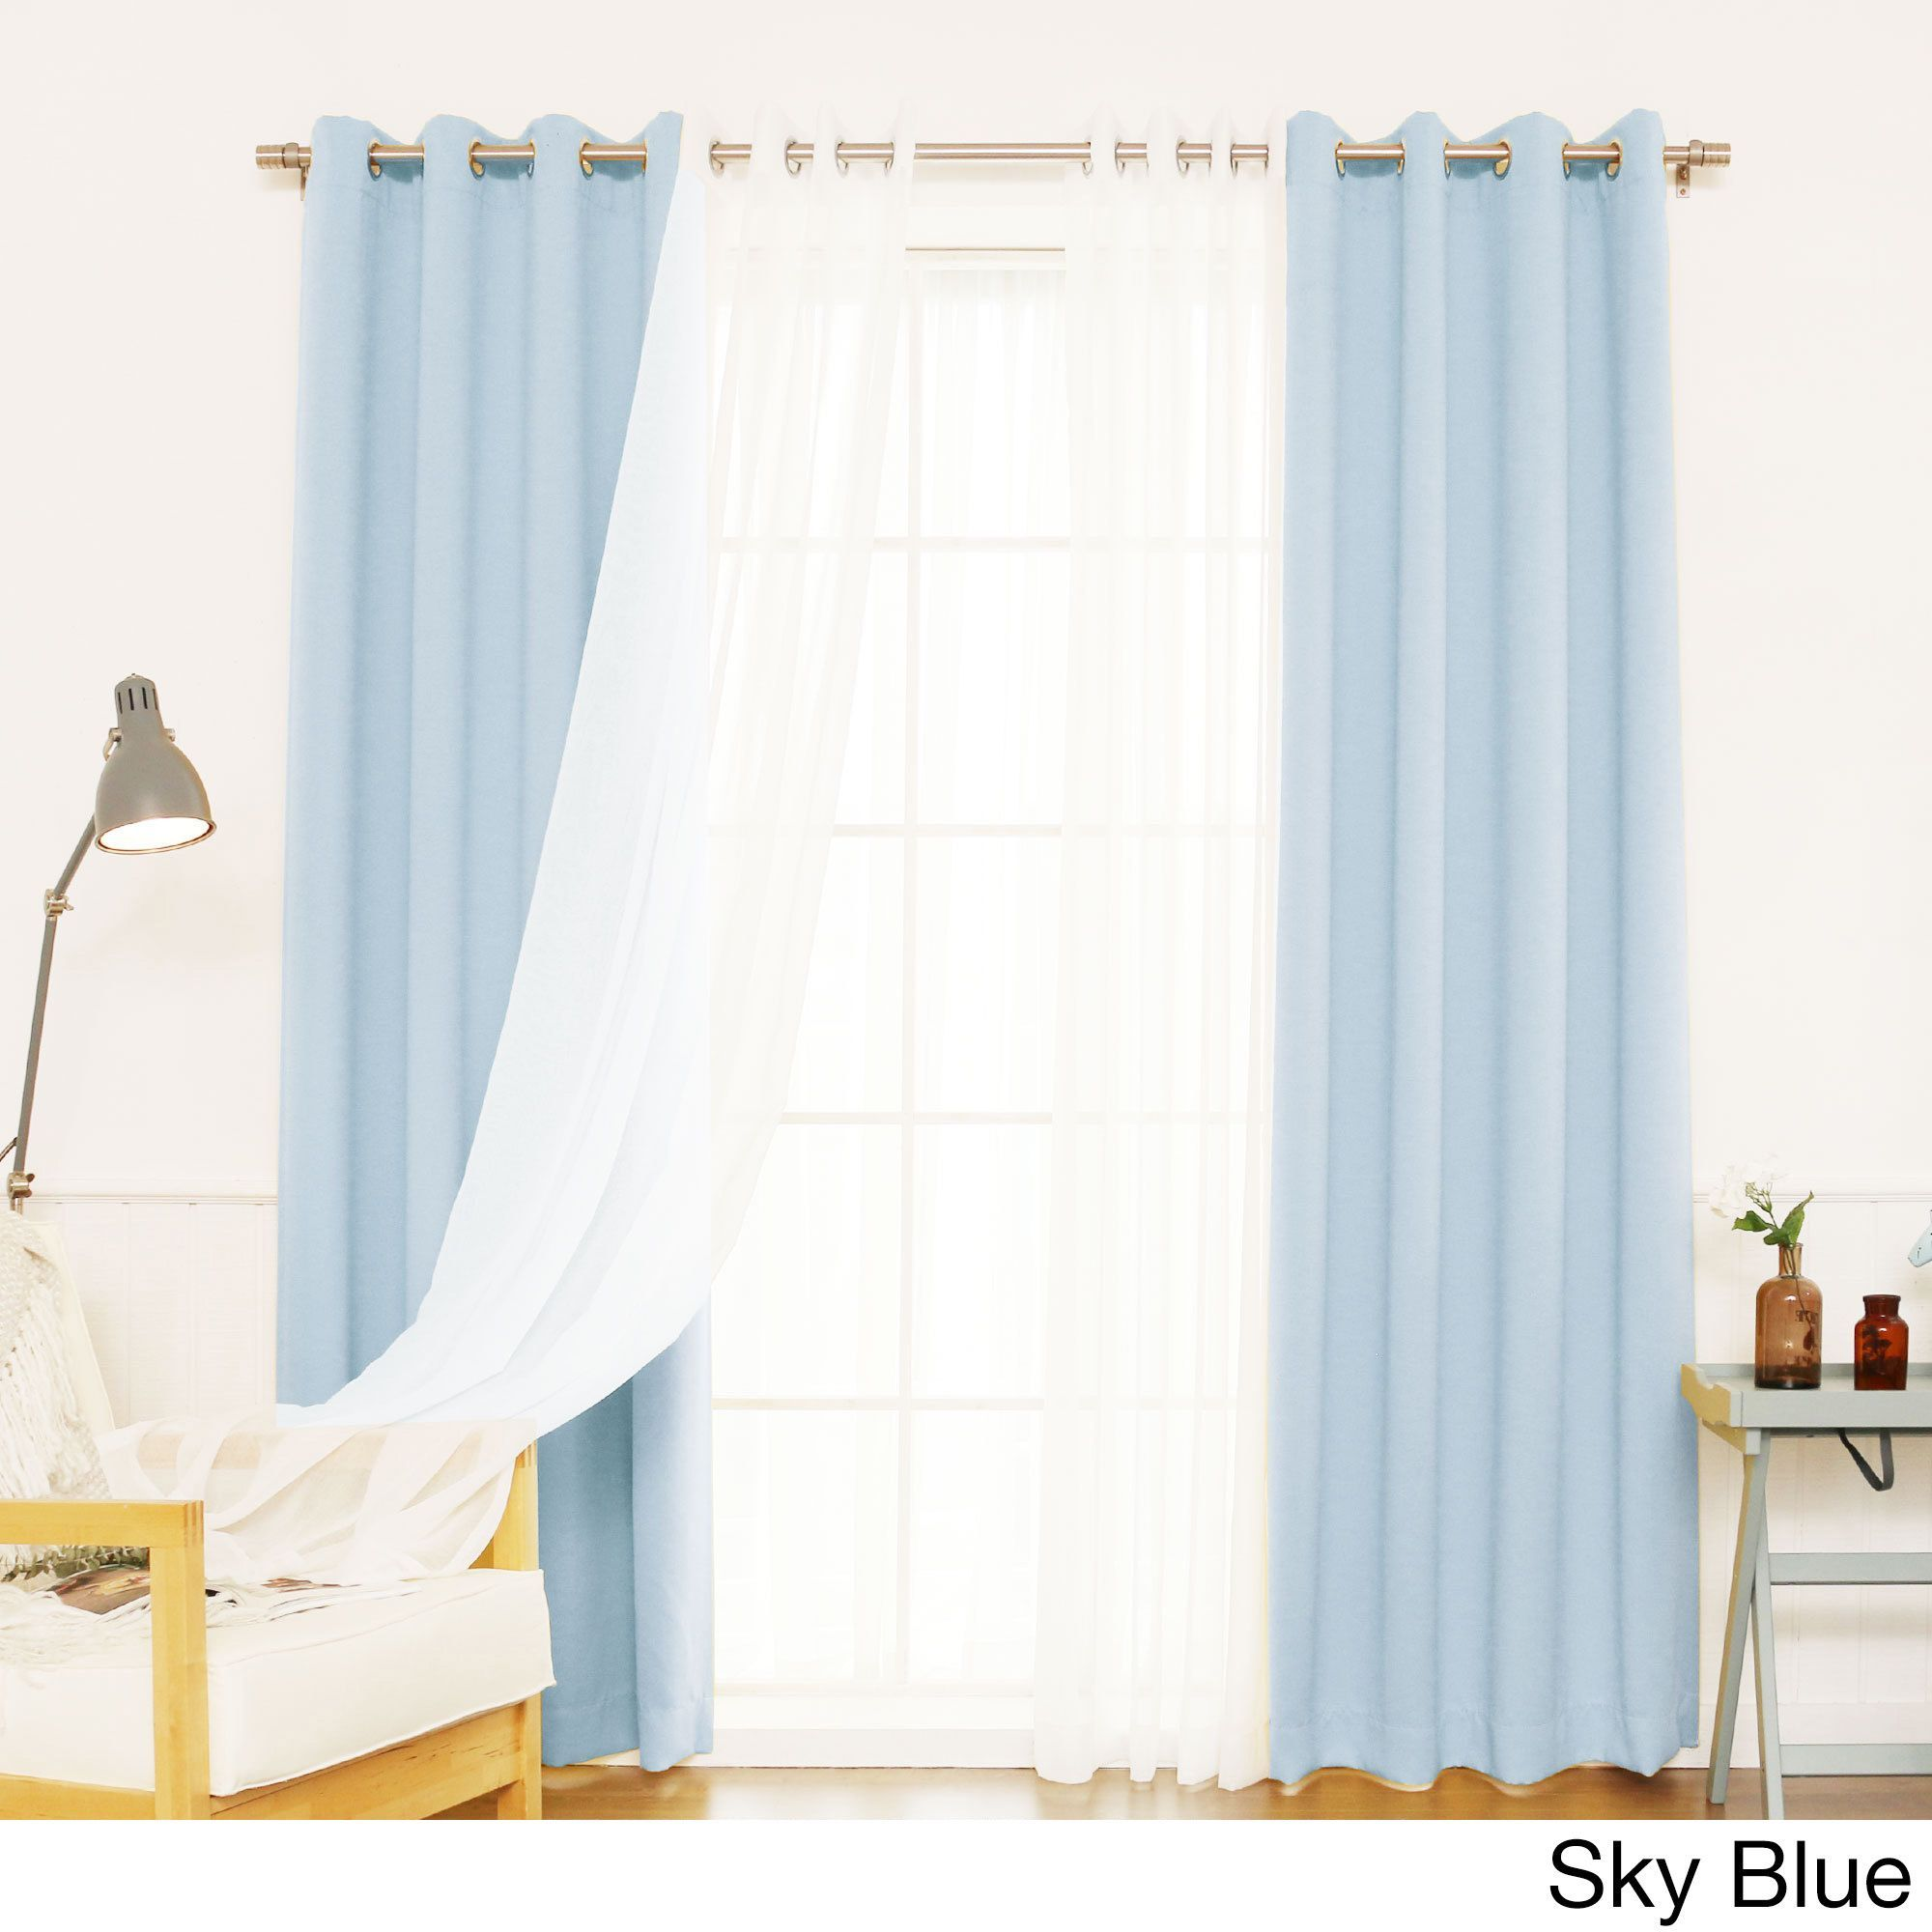 Aurora Home MIX U0026 Match Curtains Blackout And Muji Sheer 84 Inch Silver  Grommet 4 Piece Curtain Panel Pair (